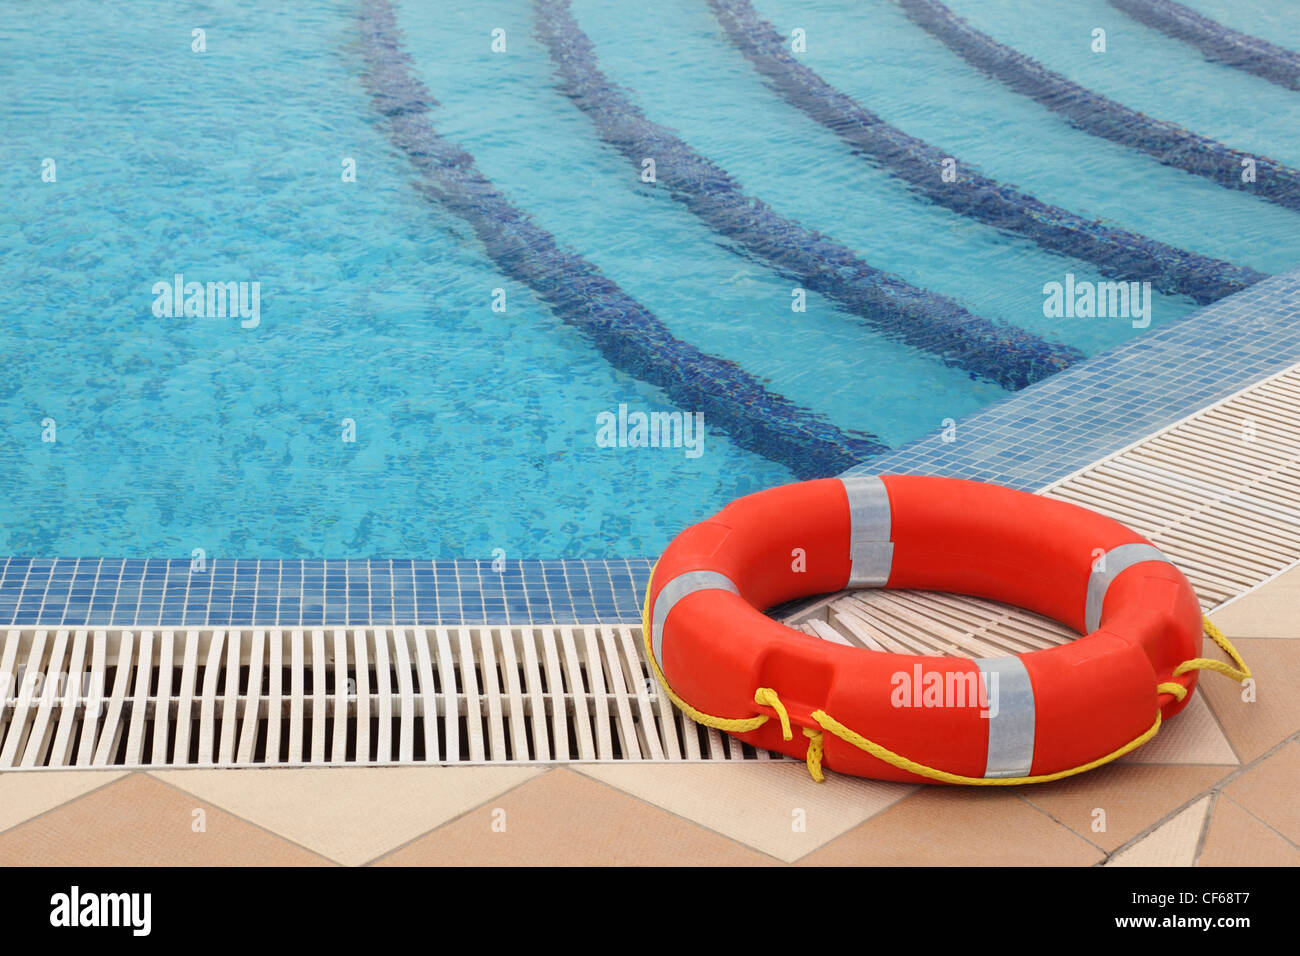 red lifebuoy with yellow ropes on tiled floor near swimming pool with stairs - Stock Image